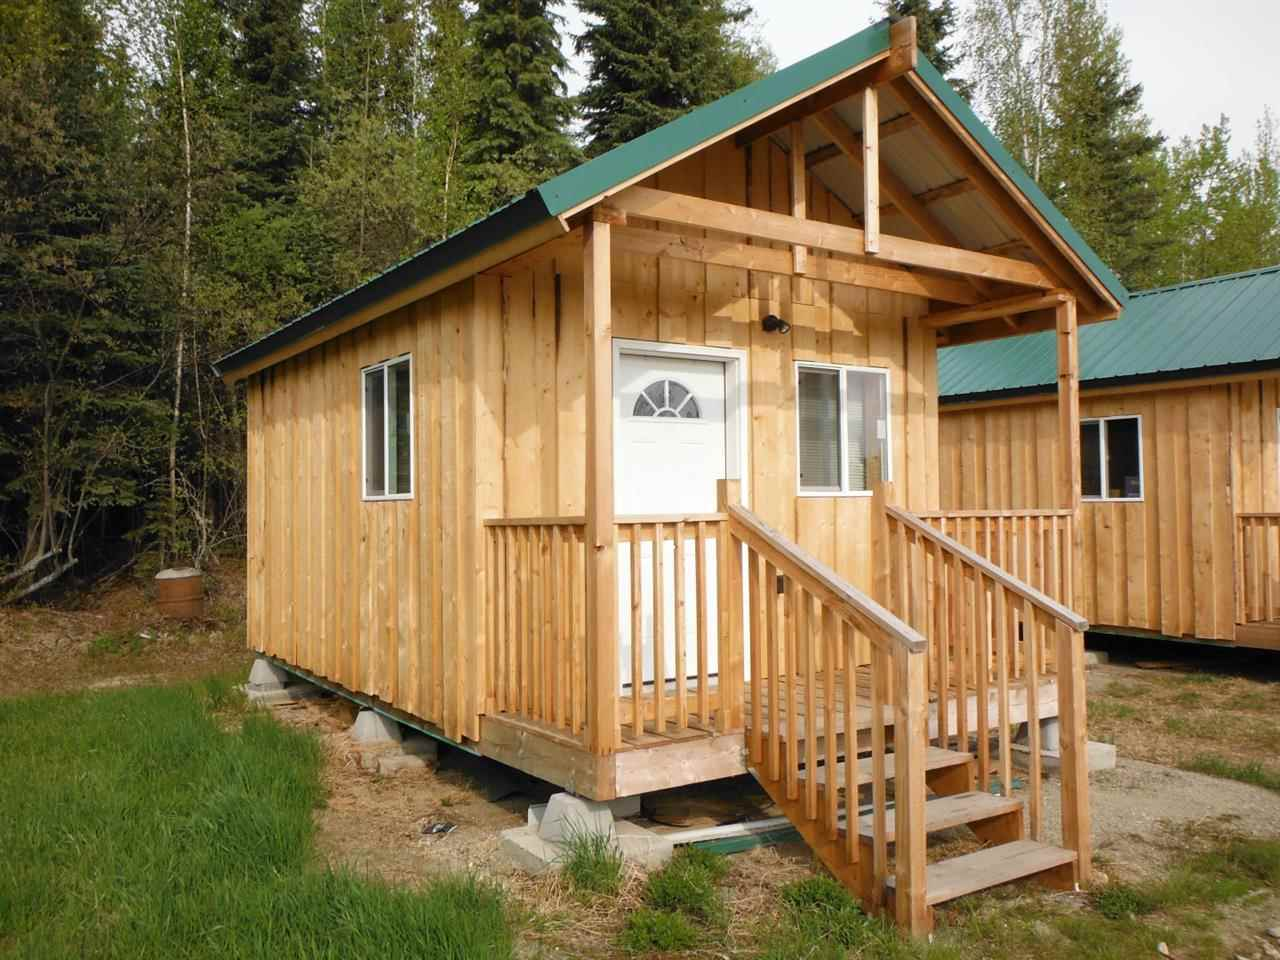 745 Sheep Creek Rd, Fairbanks, AK 99709